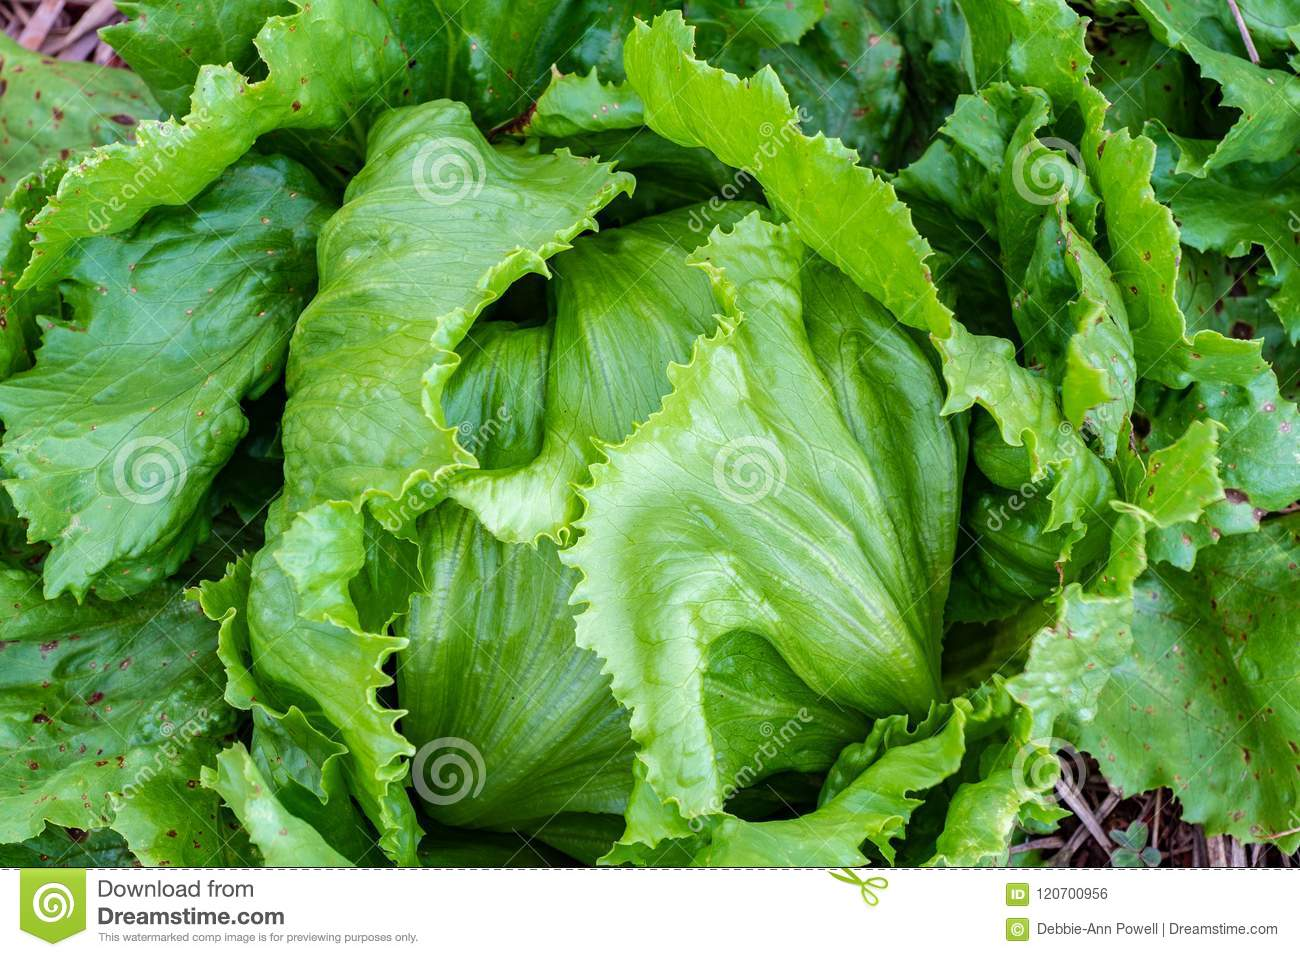 Close up on growing lettuce head leaves